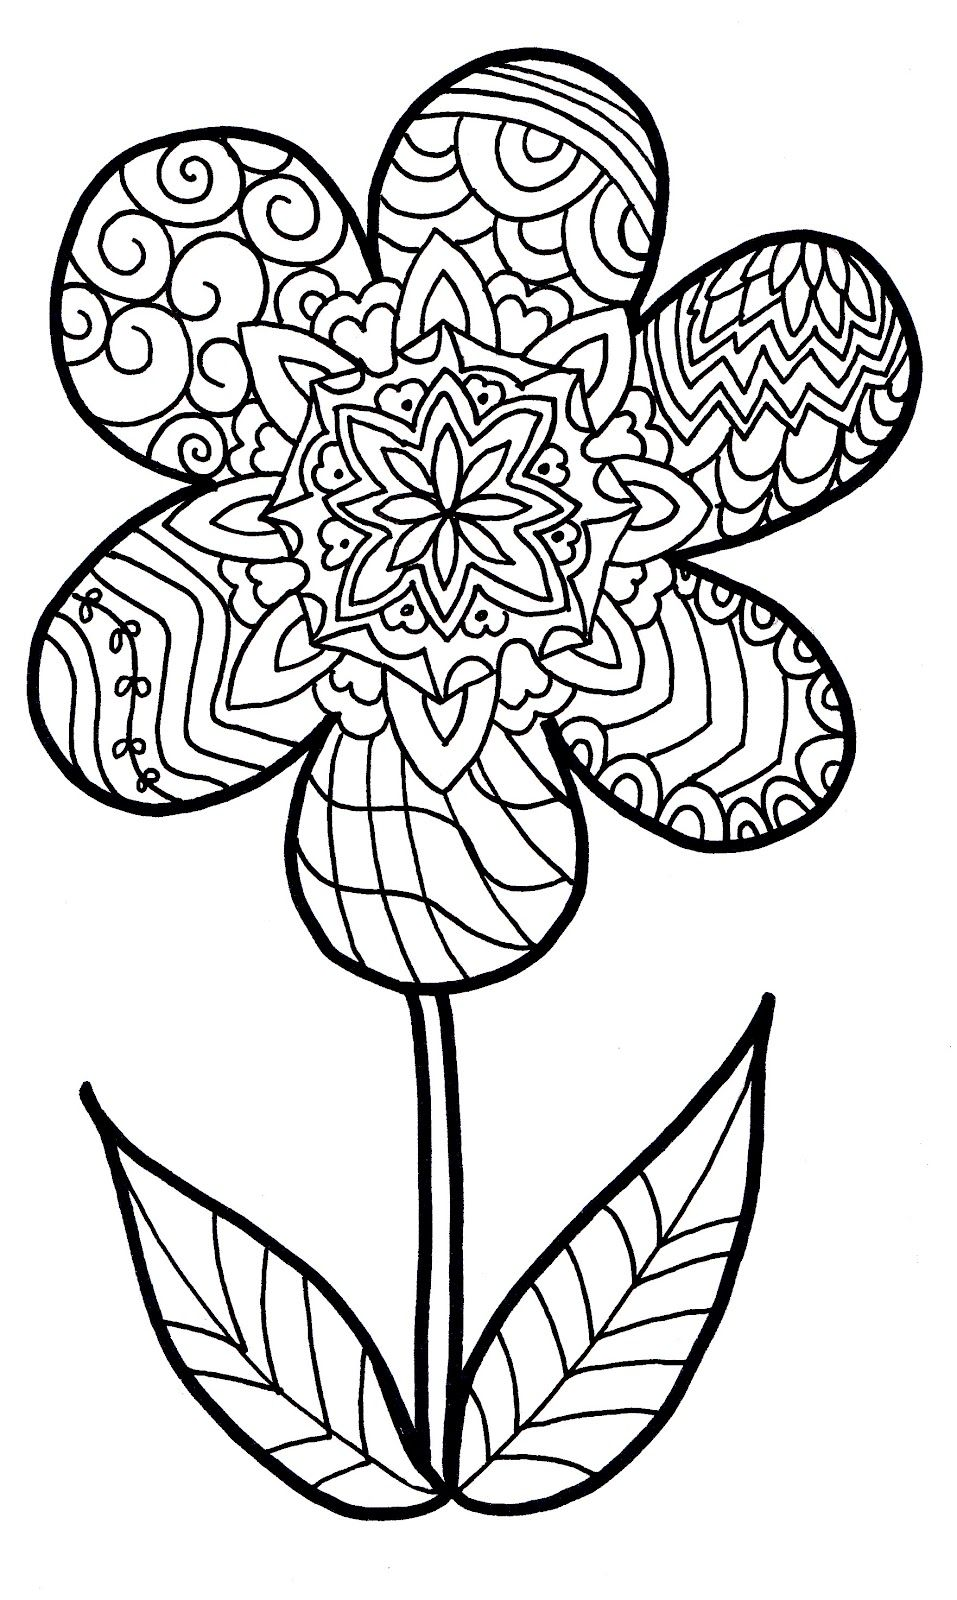 free funky flower printables - Google Search | Hobbies and crafts ...